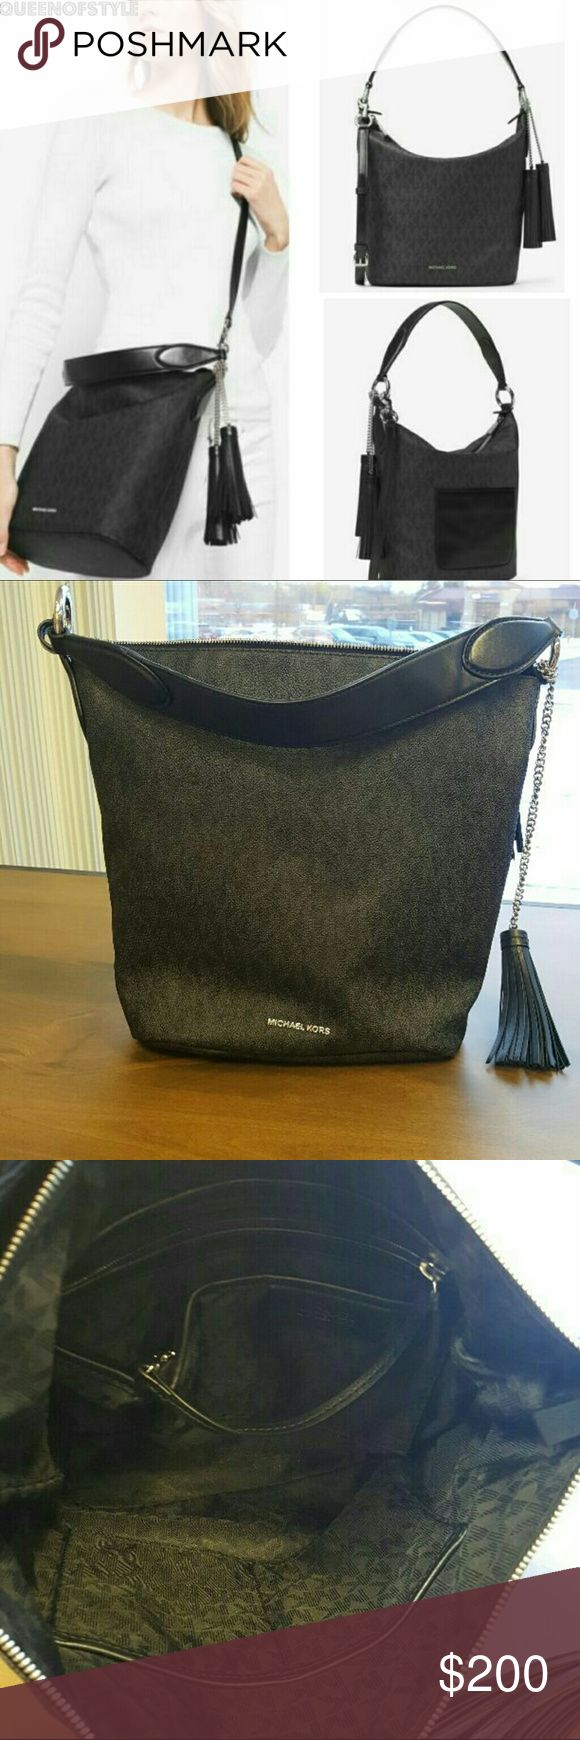 Michael Kors handbag The long strap is missing and the other problem with it is the stitches came off where I'm holding on the picture the last picture. There is no scratches or stains the handbag was a customer return they returned it back in 4 days and kept the long strap.  It's 100% authentic Original price  $376  MK signature PVC  zip top closure  silver-tone hardware exterior back slip pocket polyester lining  zip pocket, 3 open pockets, phone pocket and dog clip inside  approx. 14 x 11…